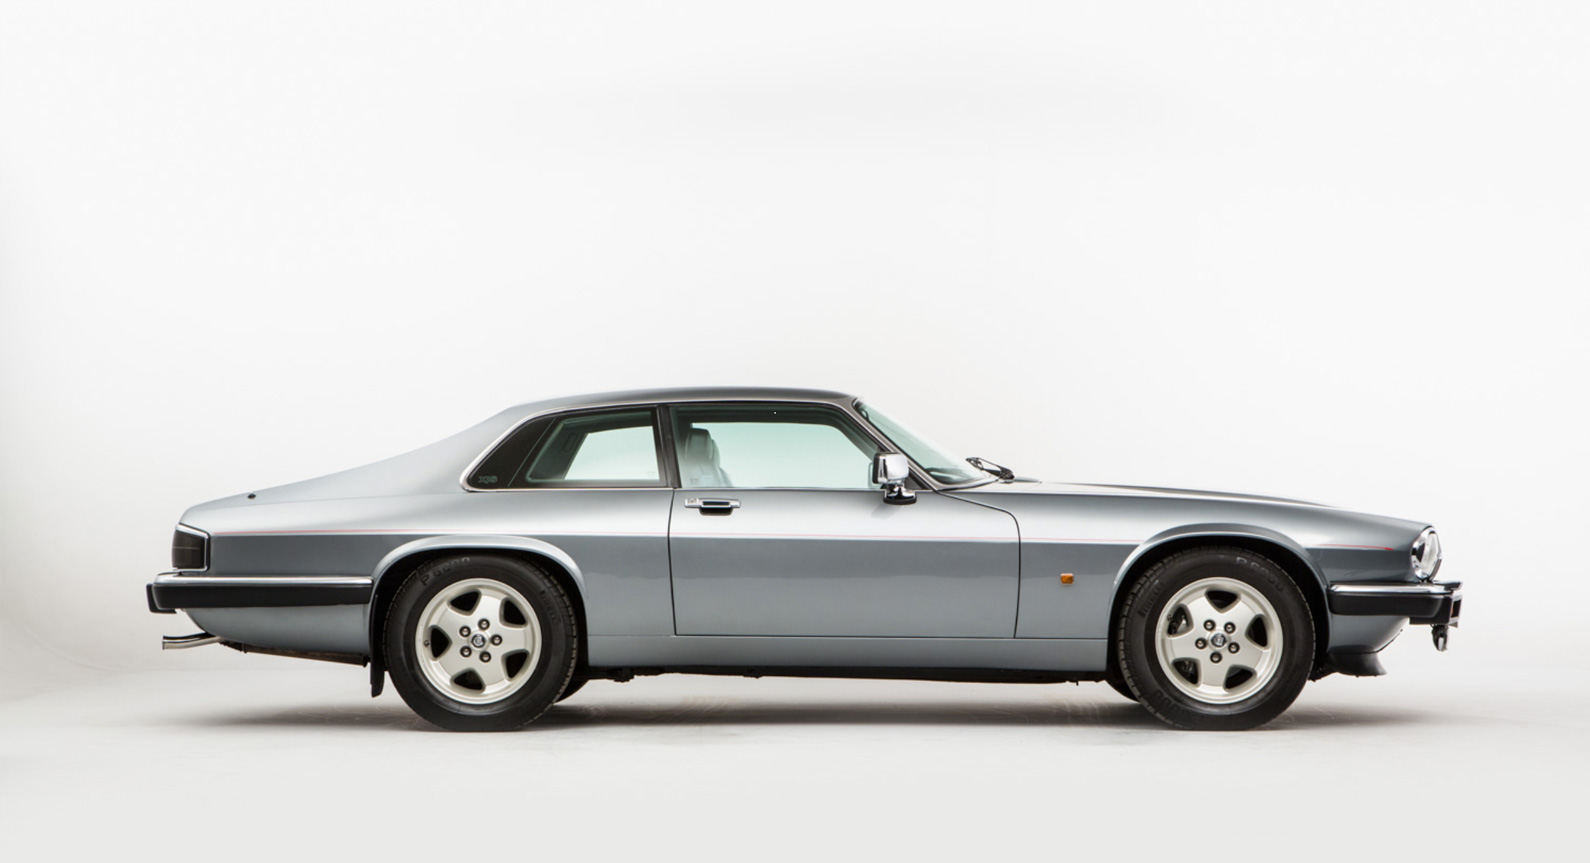 The 3 Ways This Jaguar XJS Can Enhance Your Life